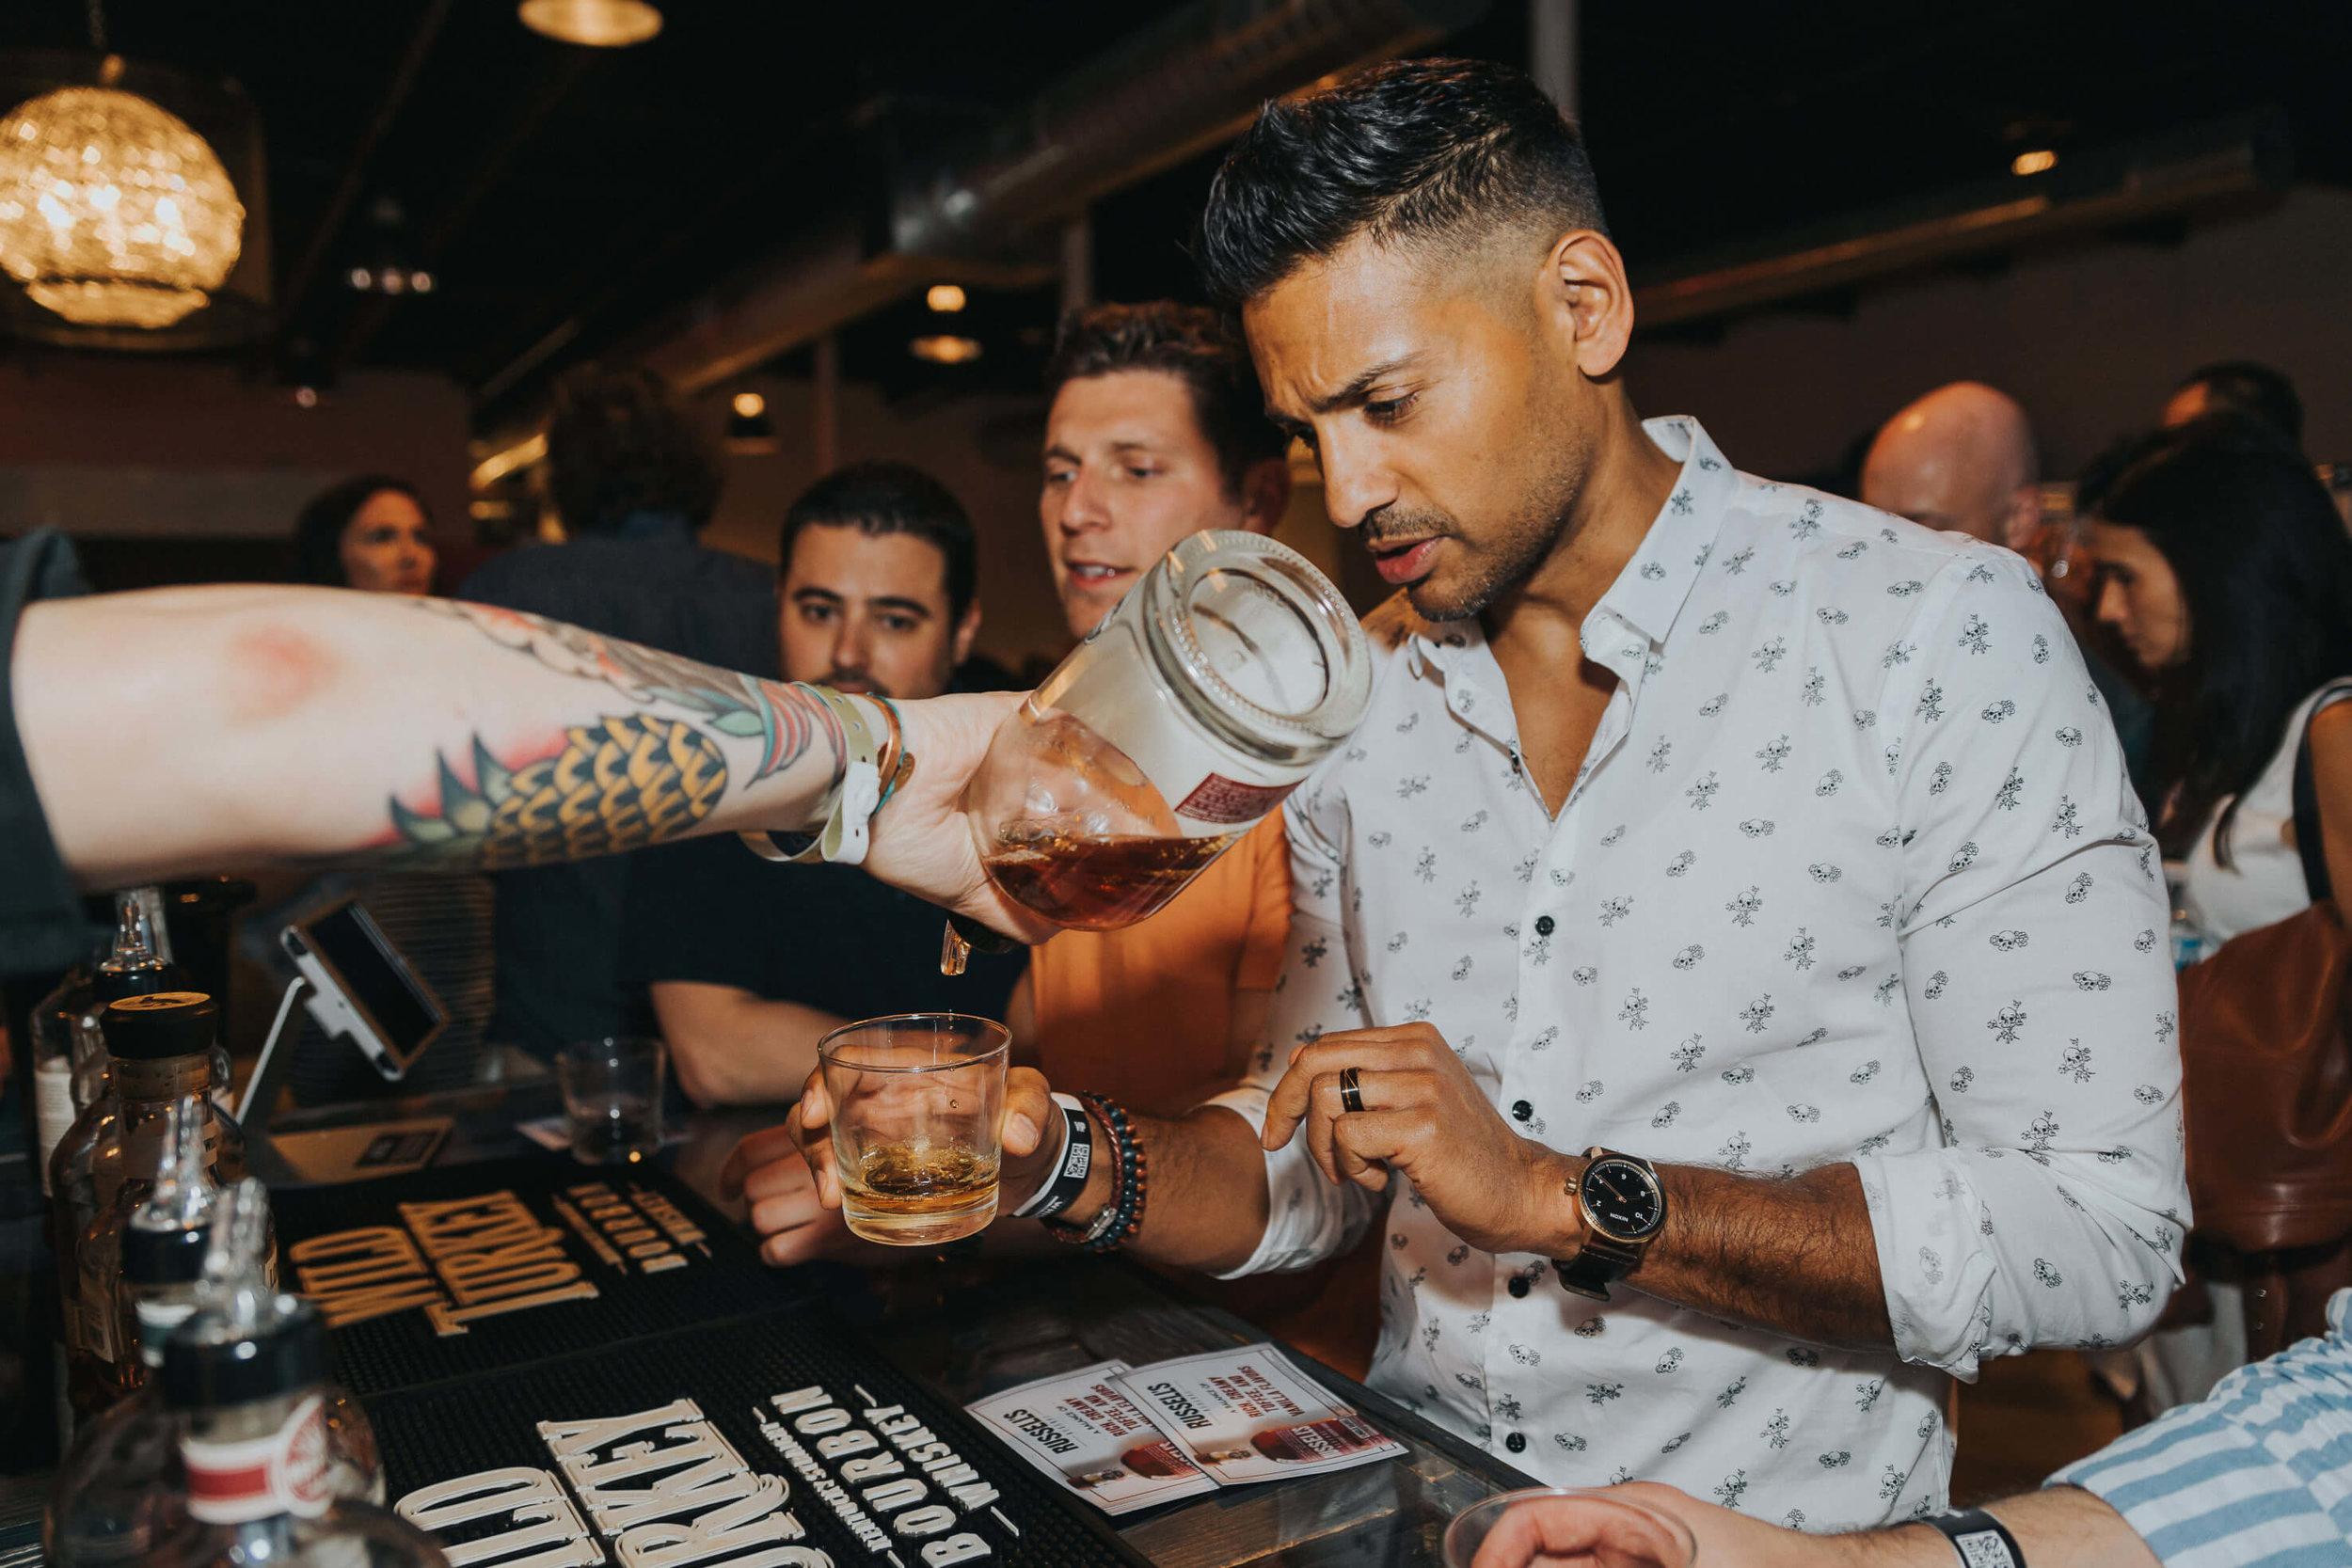 Chicago Event Photography_The Whisky X @ Revel_15.jpg